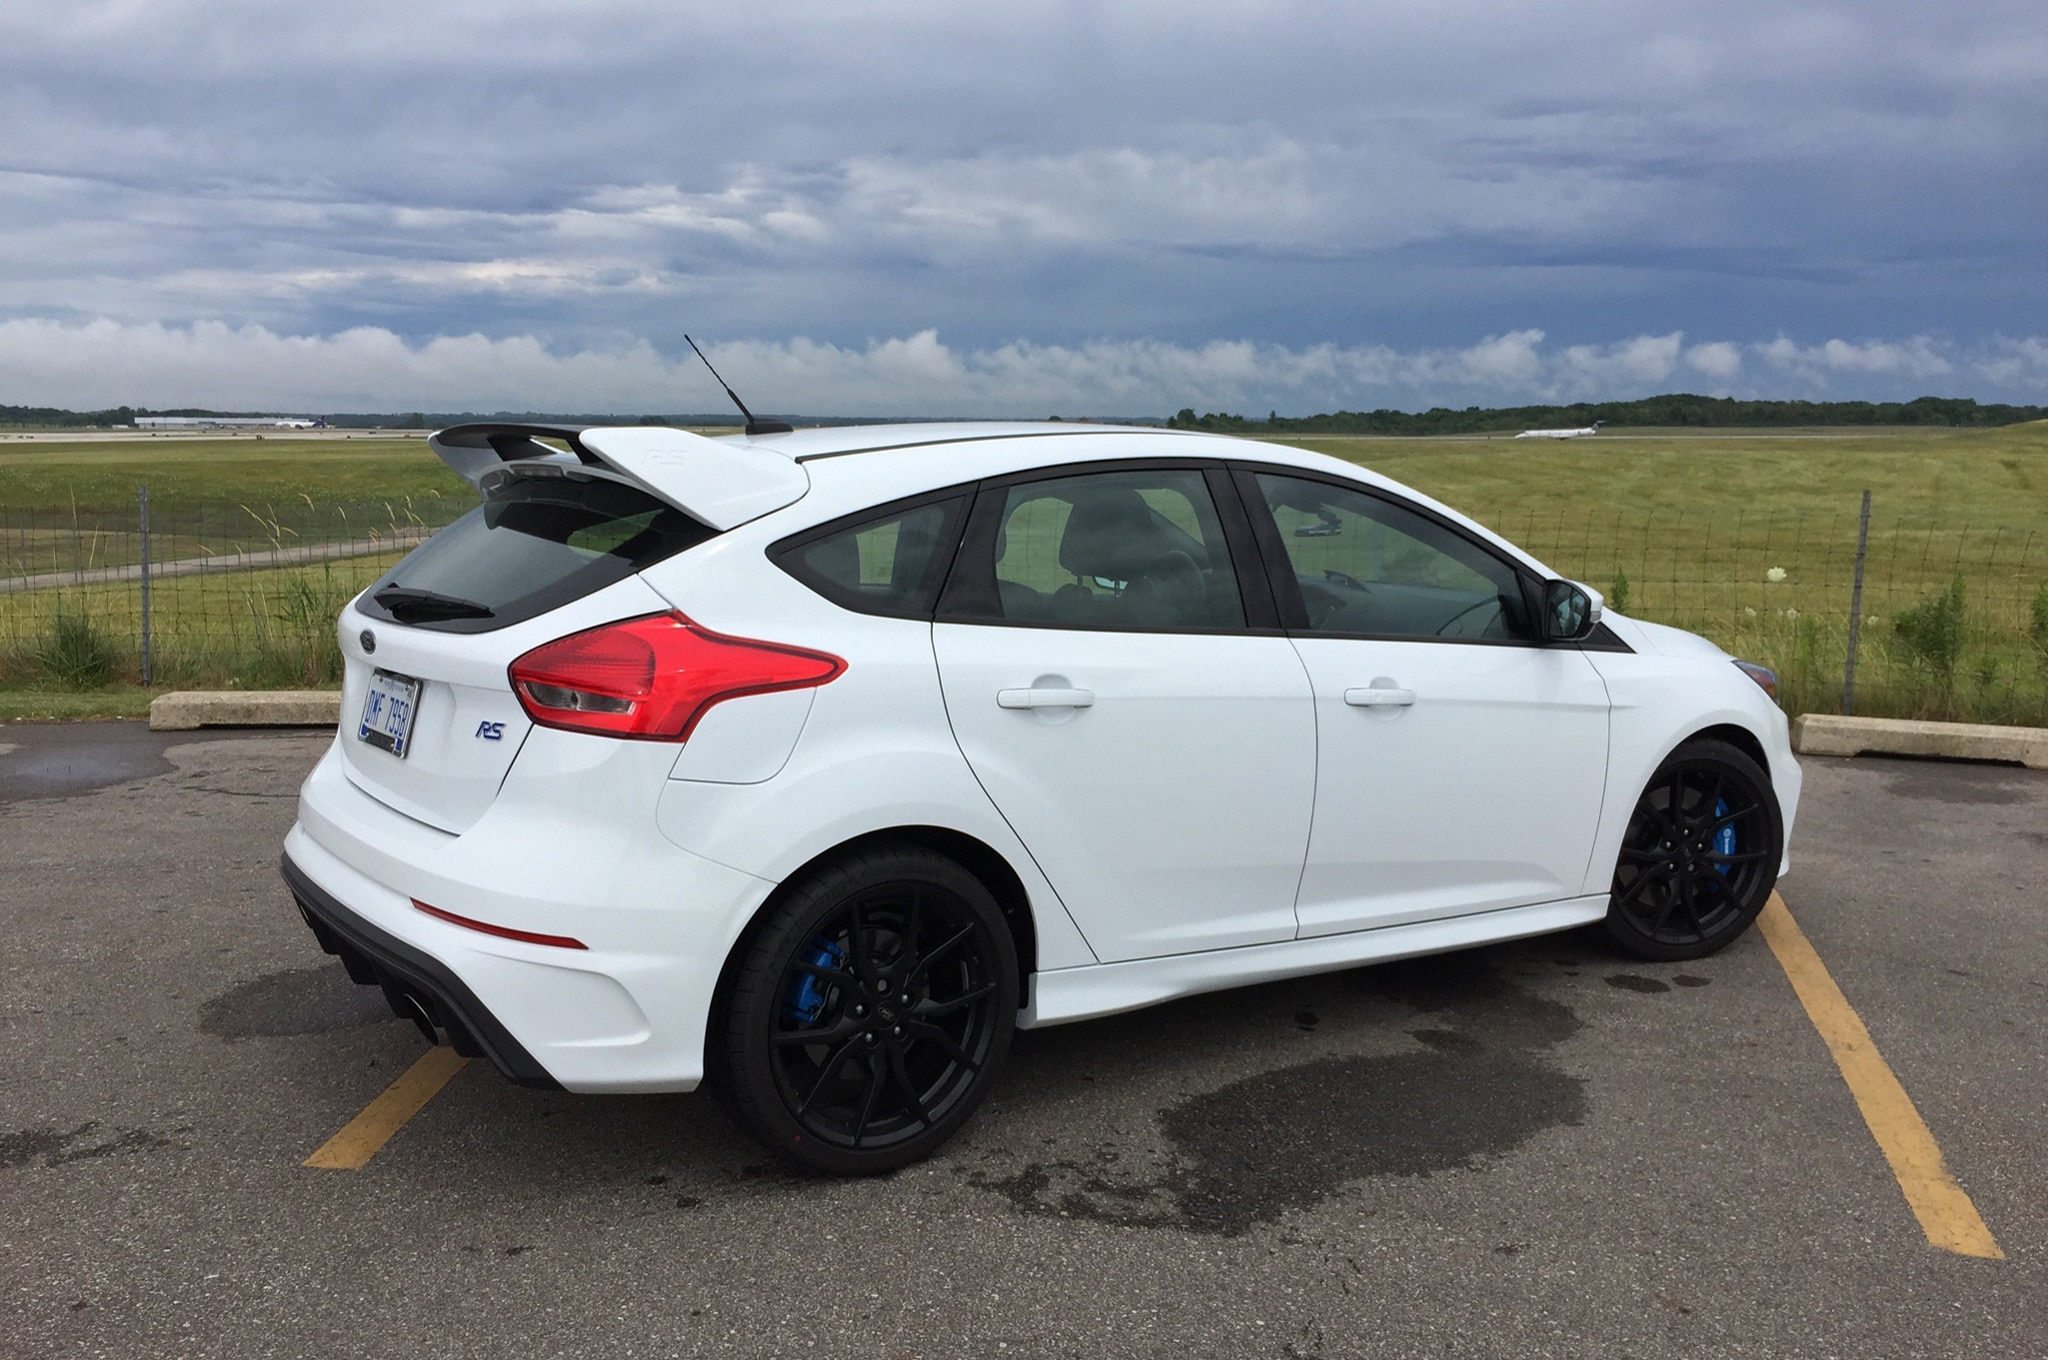 Focus St 0 60 >> 2016 Ford Focus RS: The Ownership Experience, Conclusion | Automobile Magazine